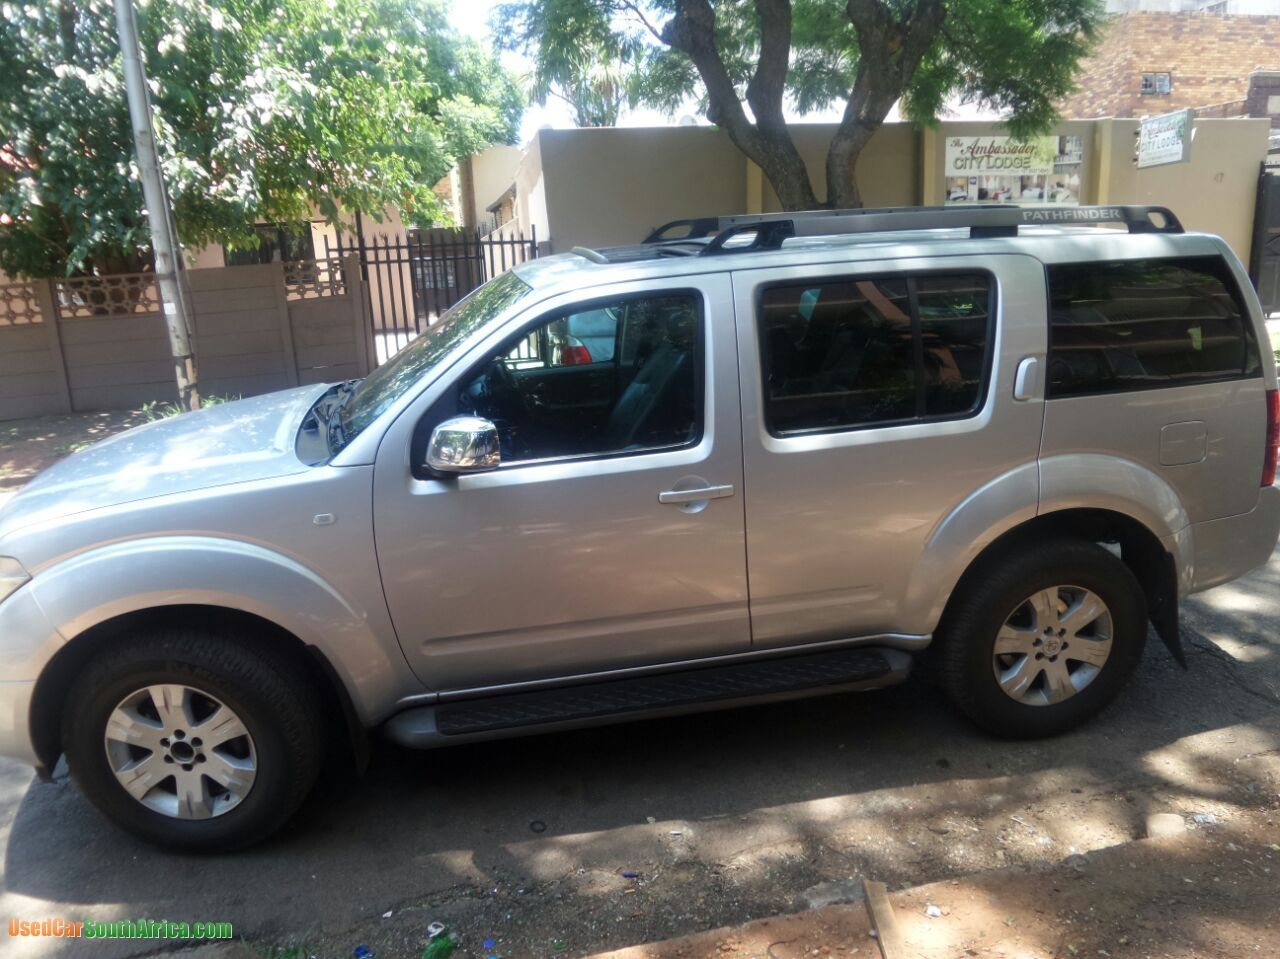 2006 Nissan Pathfinder 2.5 used car for sale in